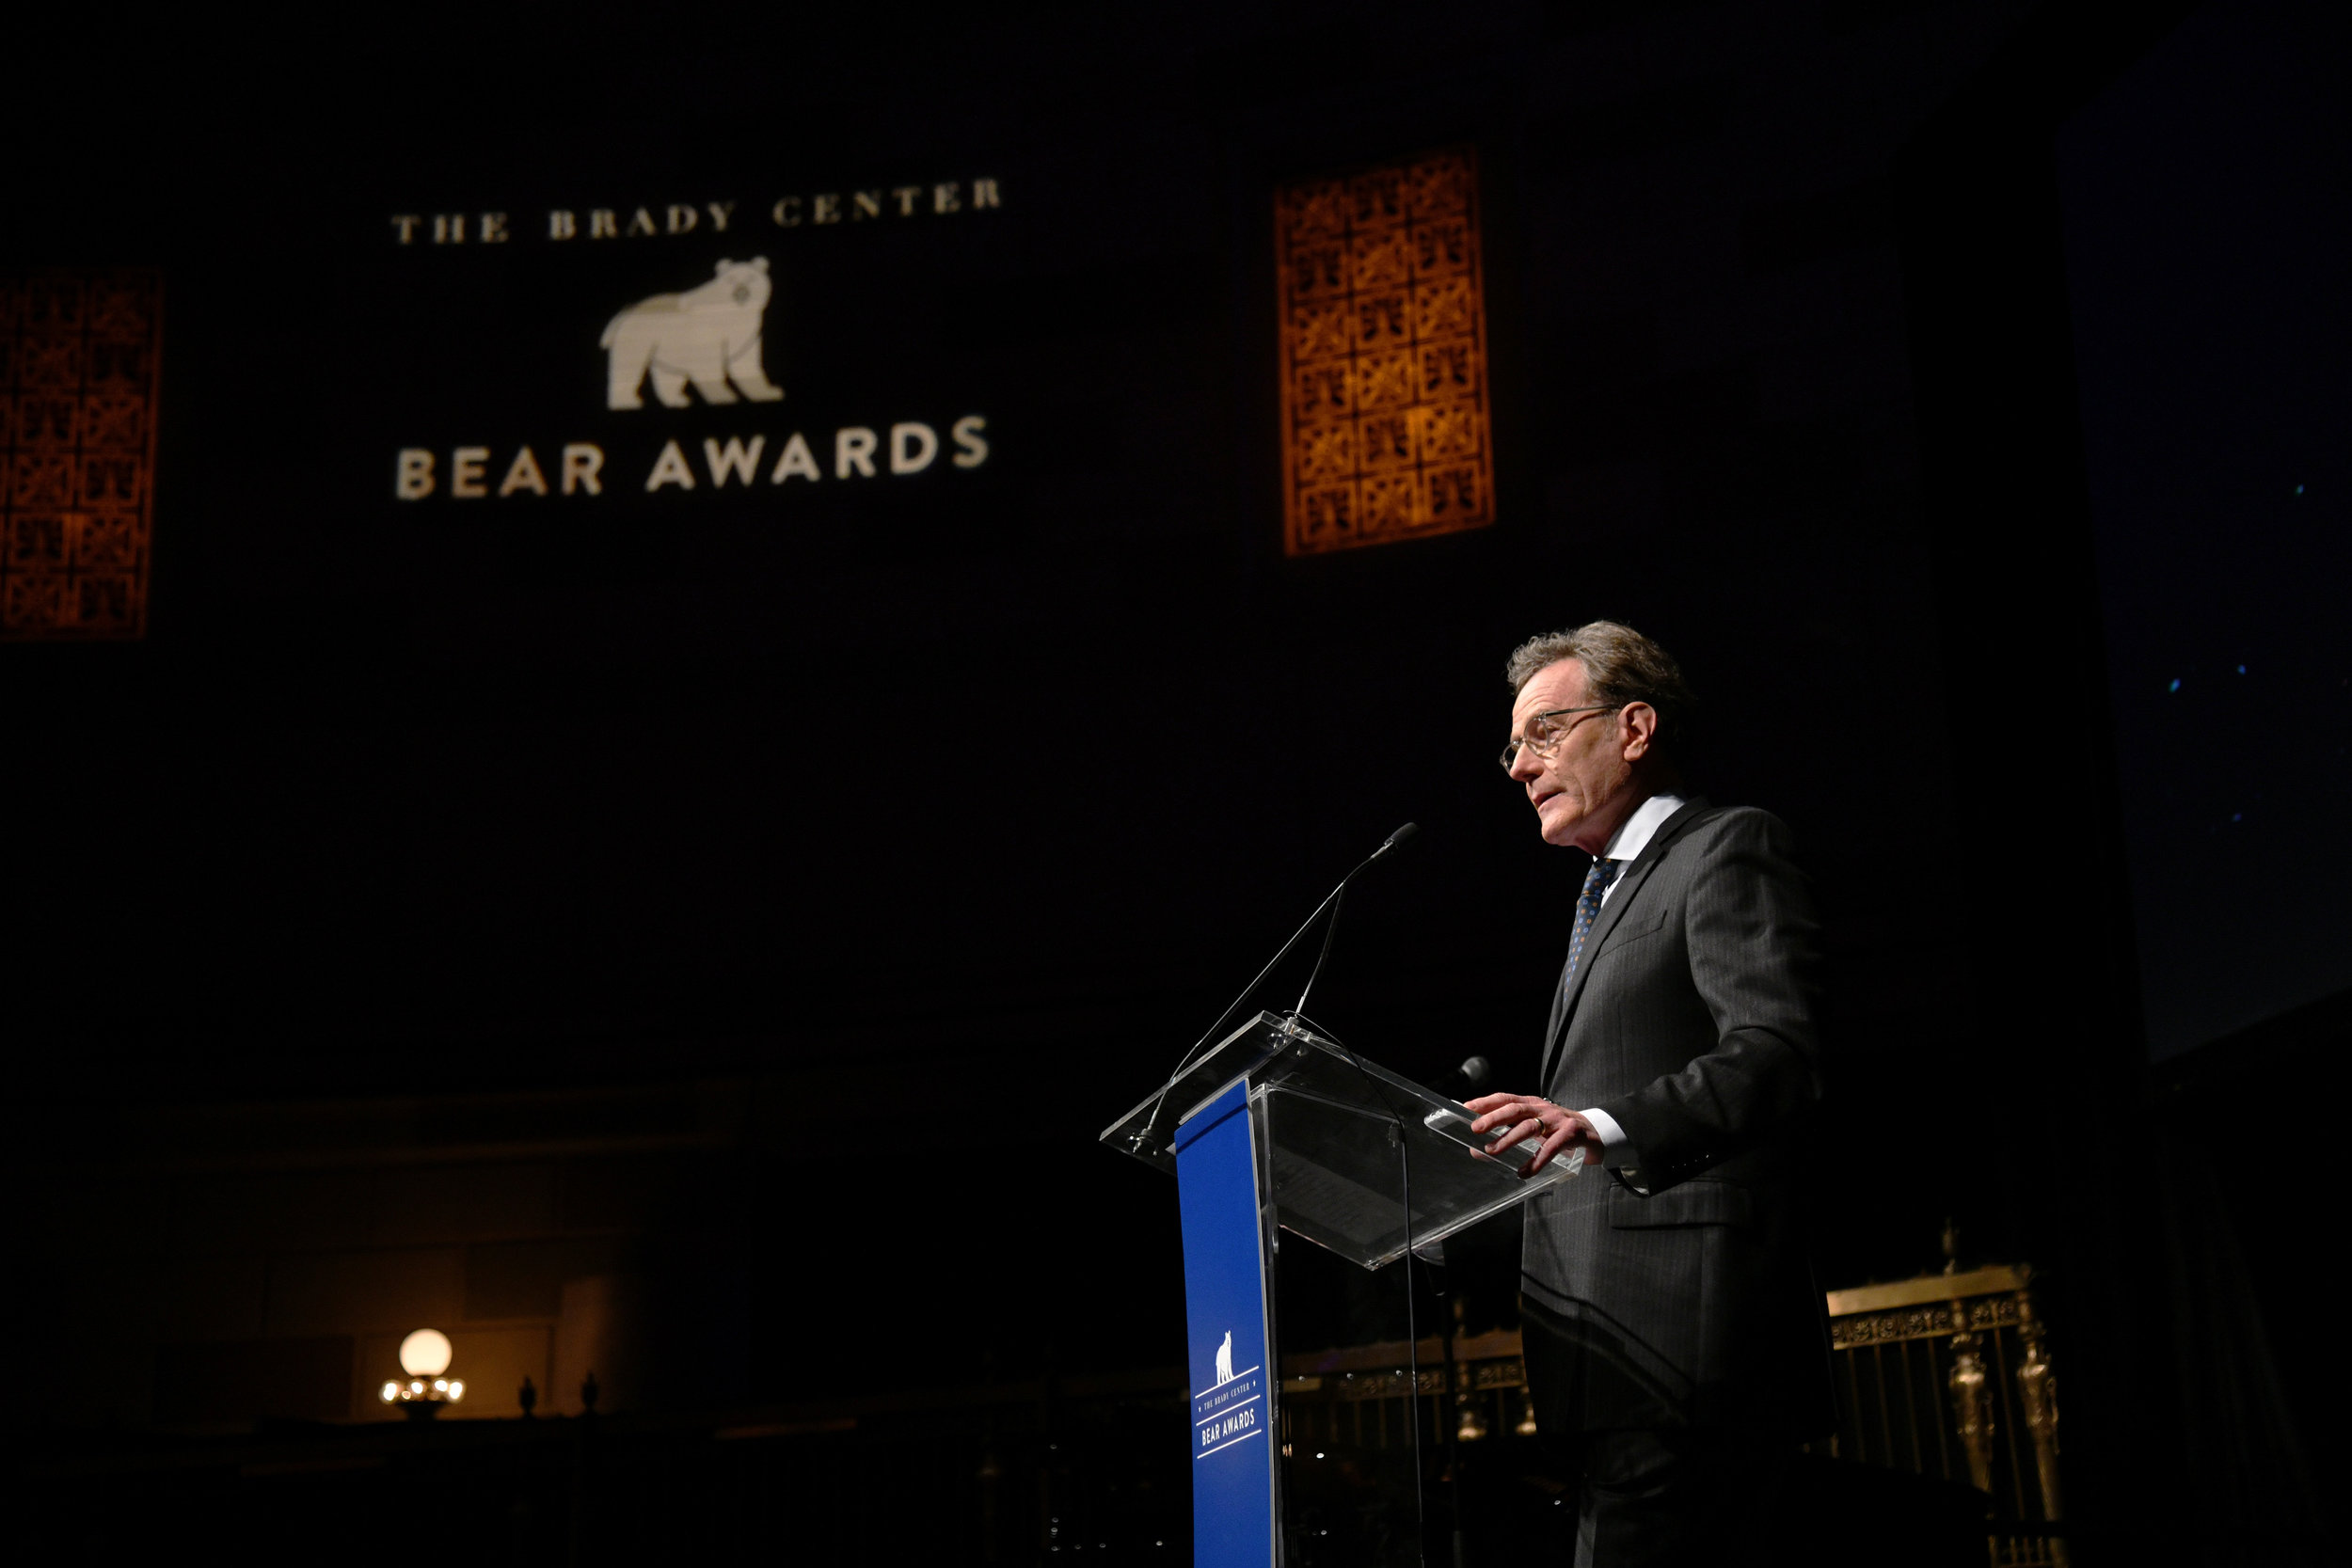 Bryan Cranston attends Brady Center's 2018 Bear Awards Honoring Real Life Heroes Helping to Prevent Gun Violence